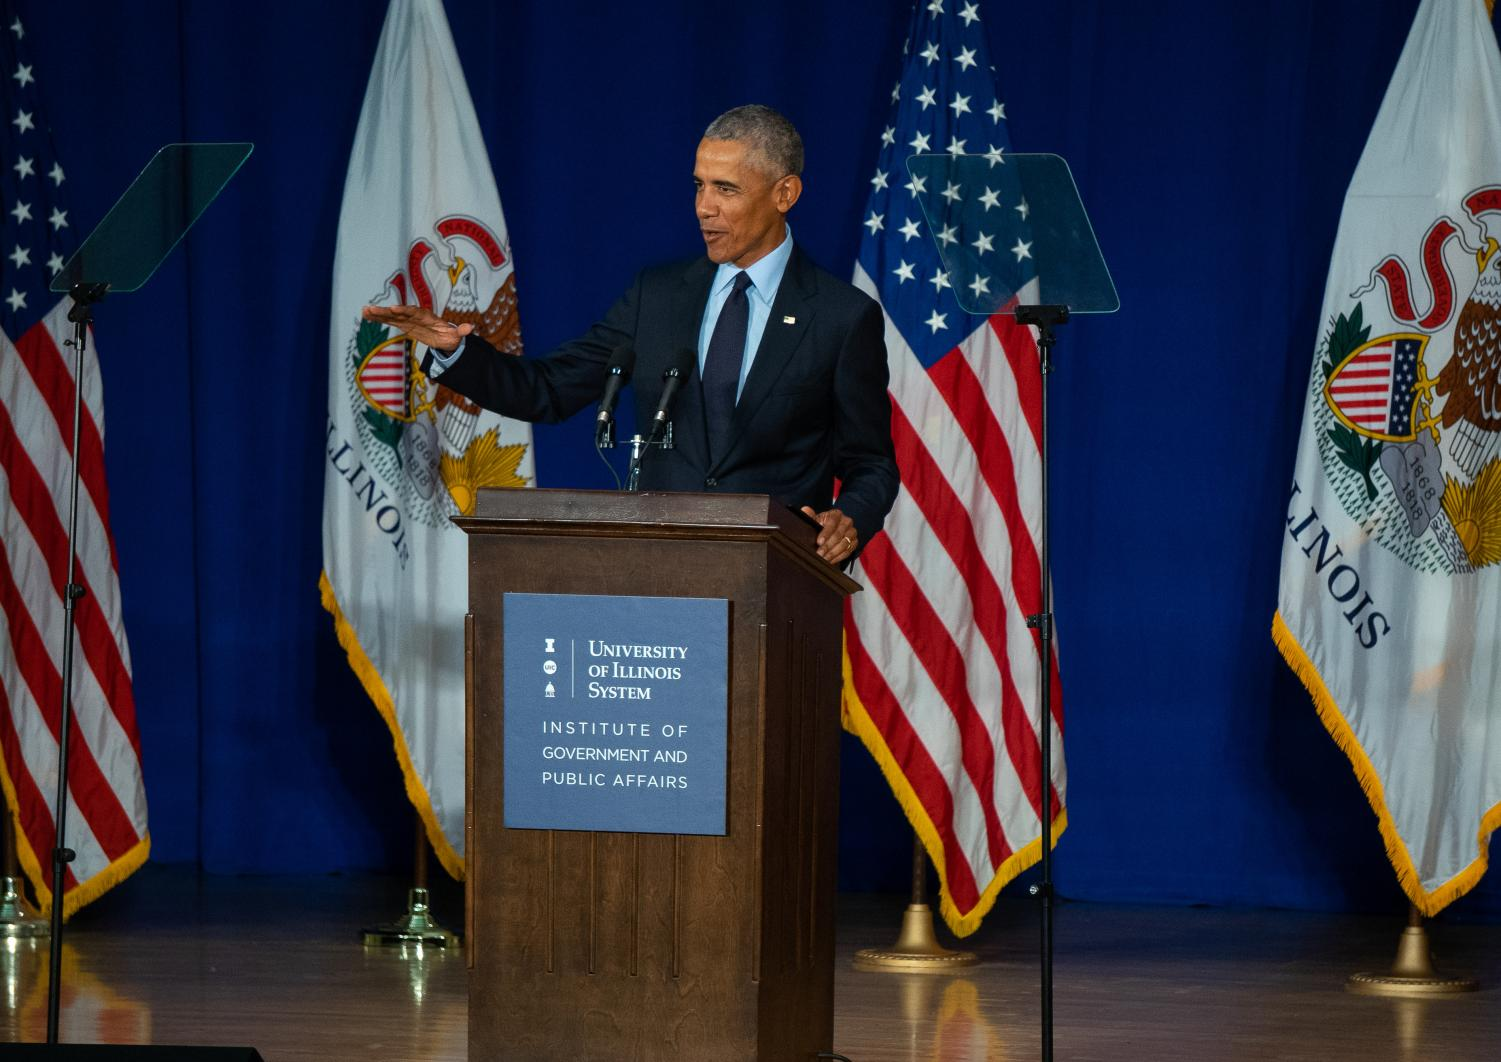 Former President Obama begins his address to the University's attending students.